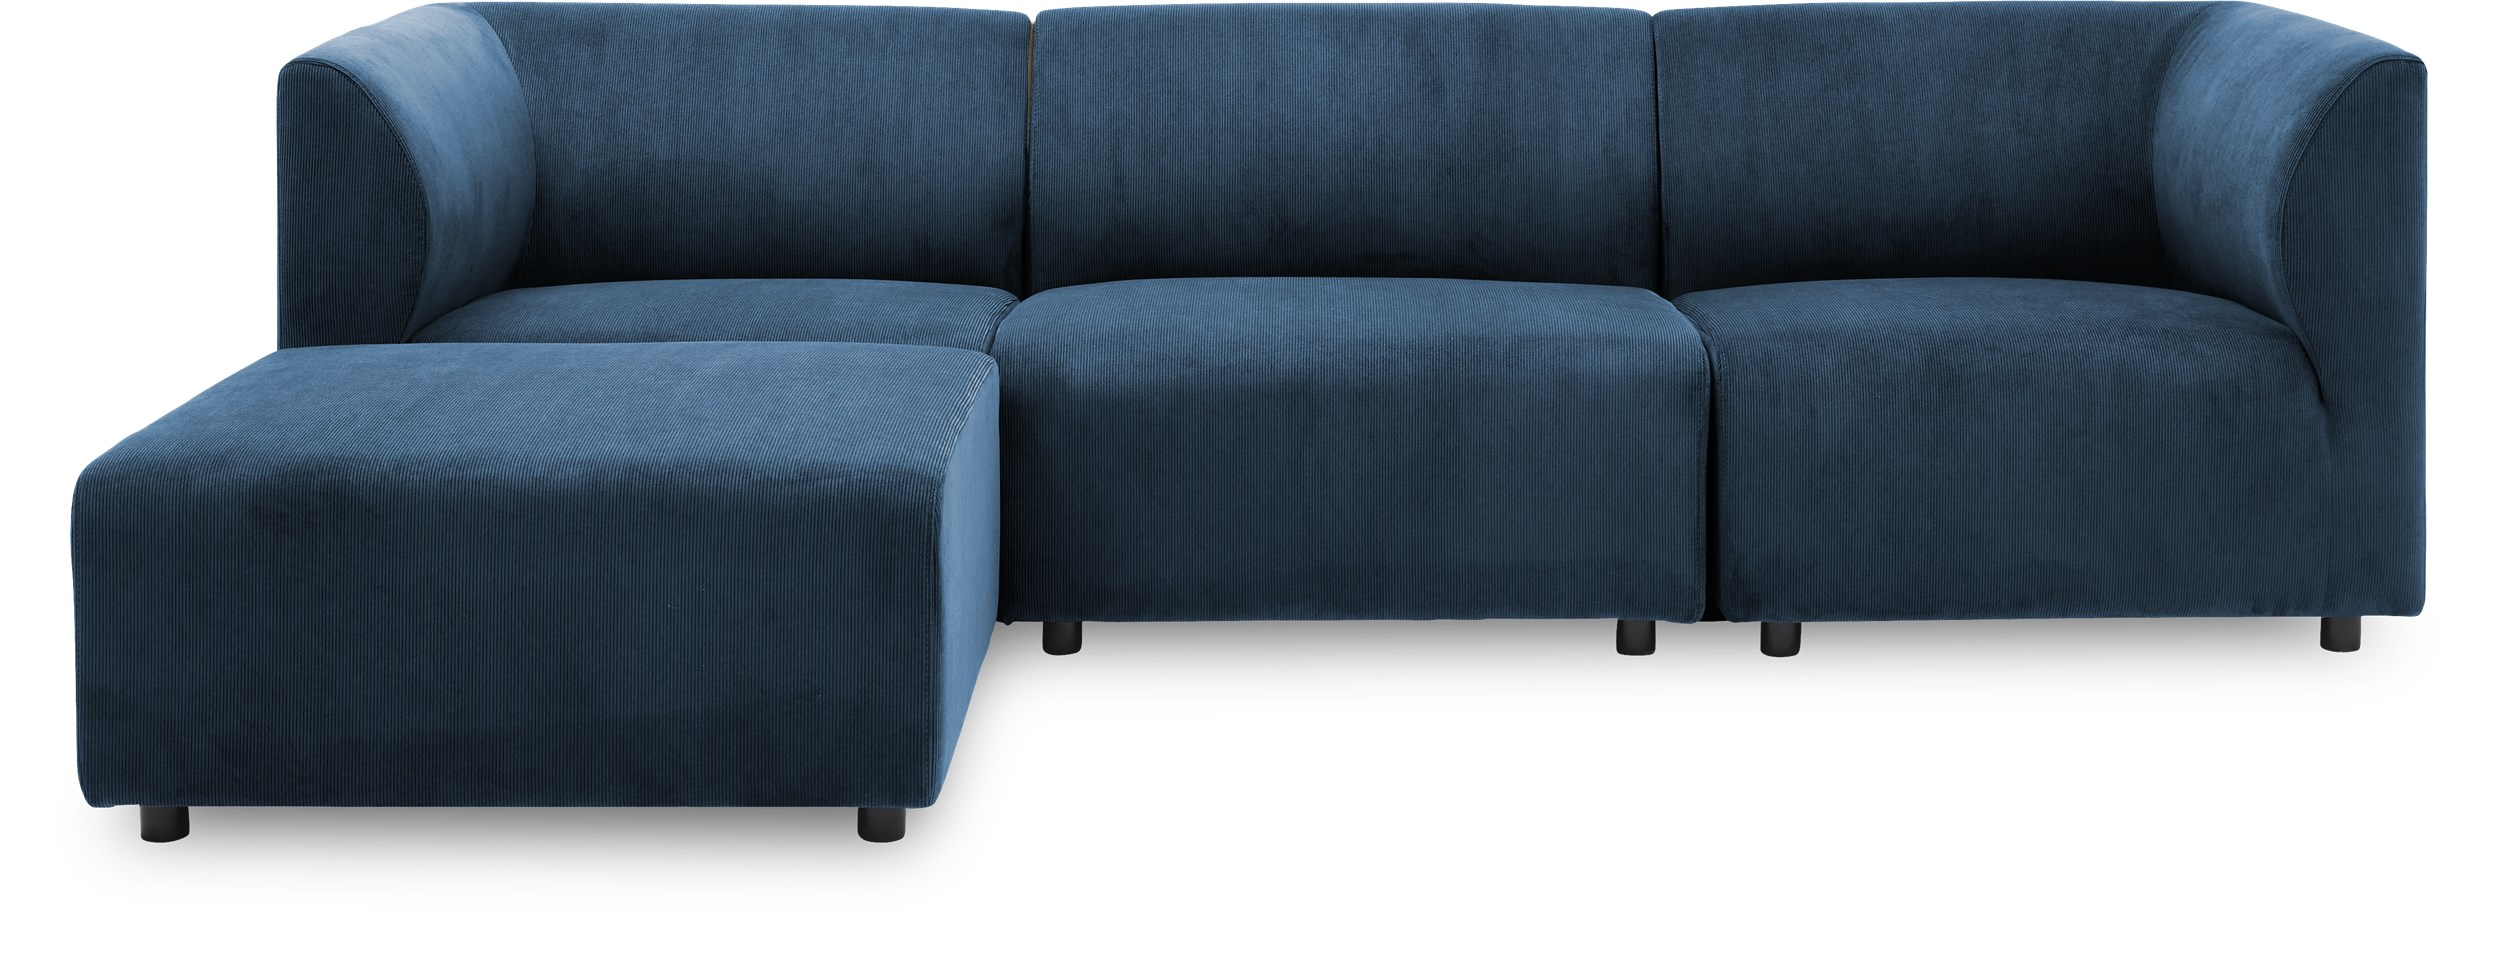 Divani 3 pers. inkl. puf Sofa - Wave 220 Royal blue stof og ben i sort plast